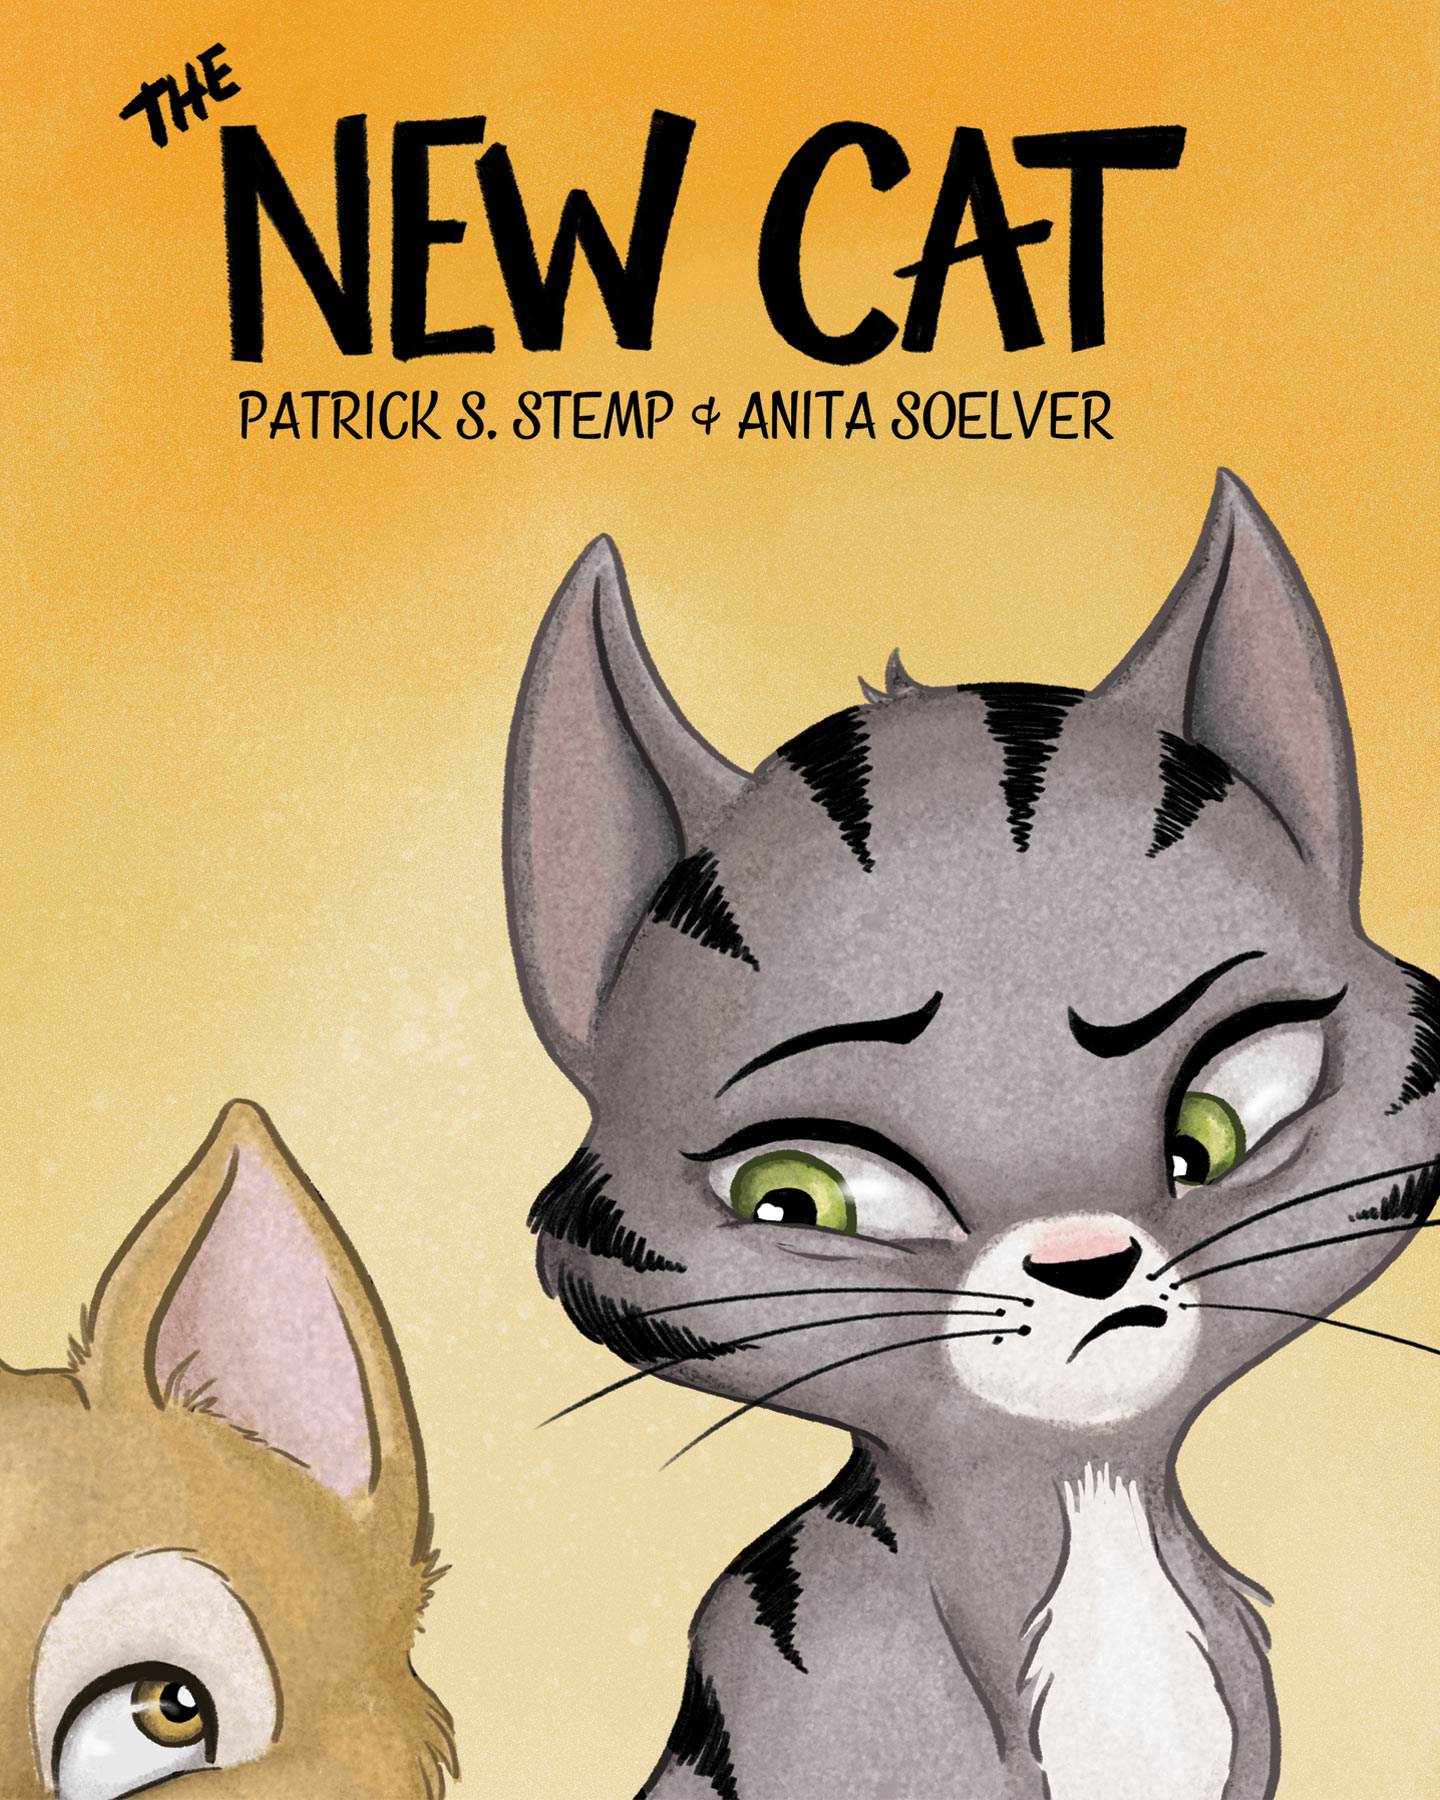 The New Cat - a children's book by Patrick Stemp & Anita Soelver